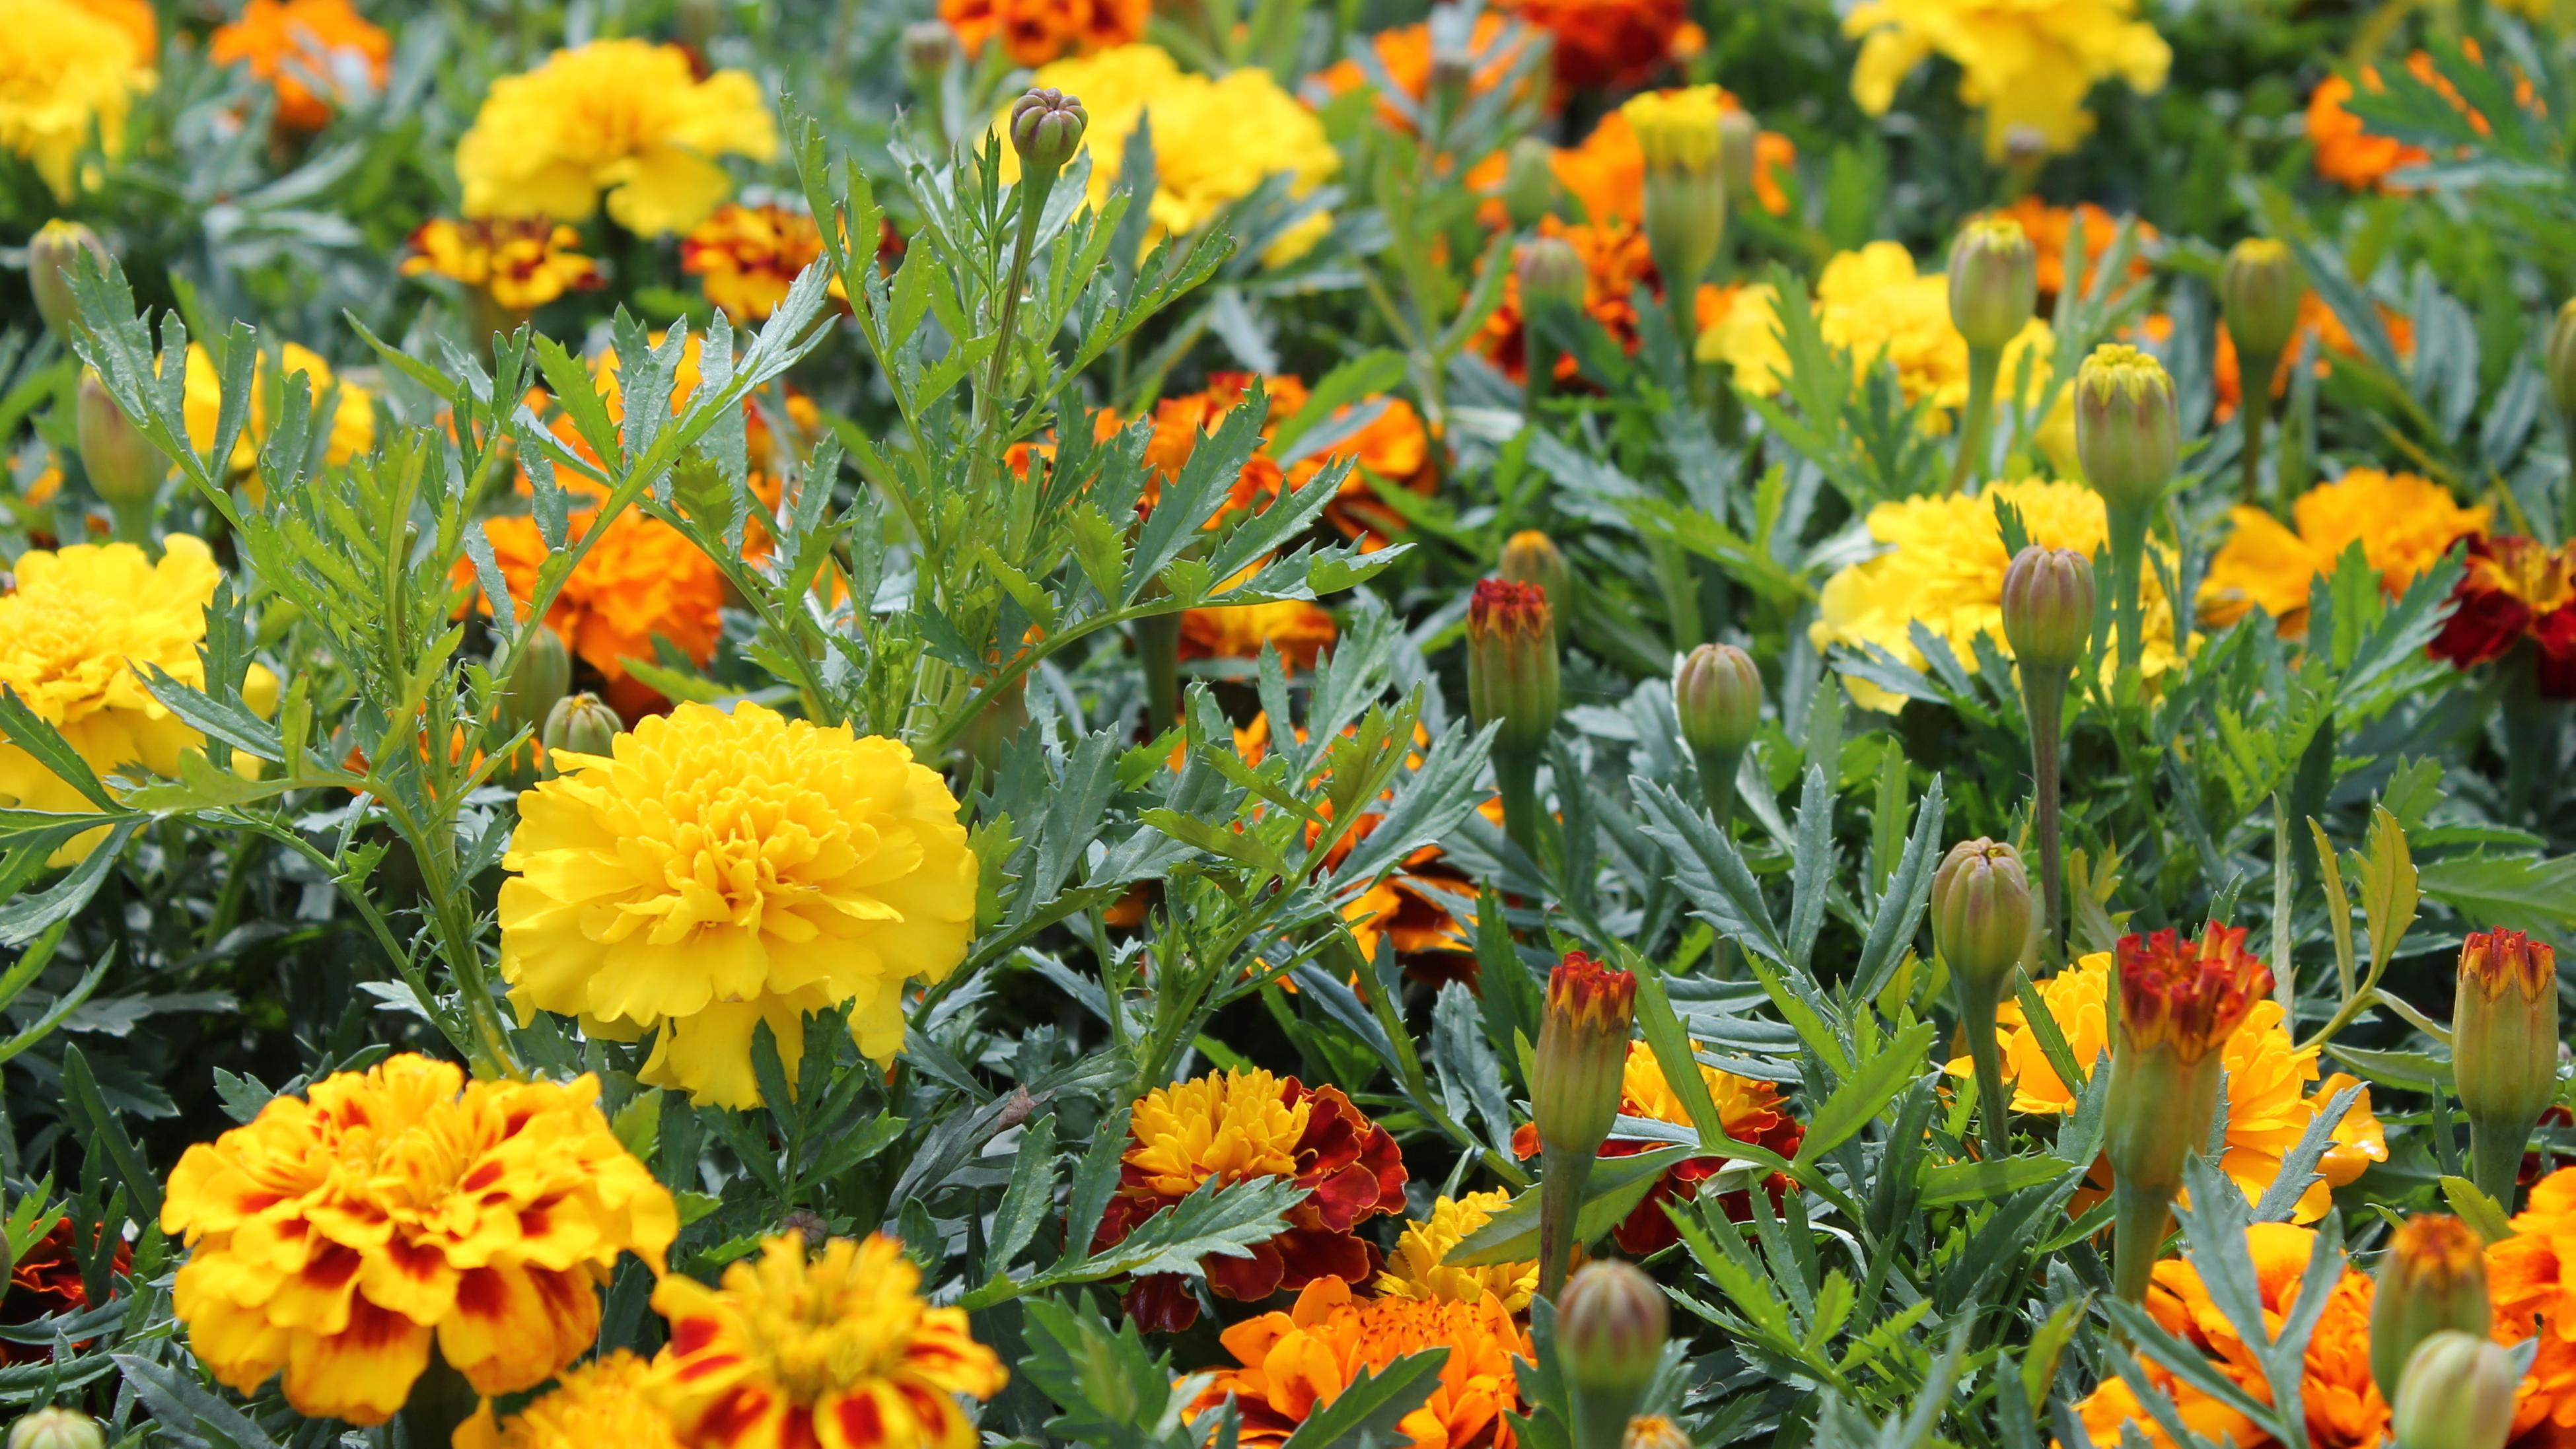 Bright yellow marigolds in flower.